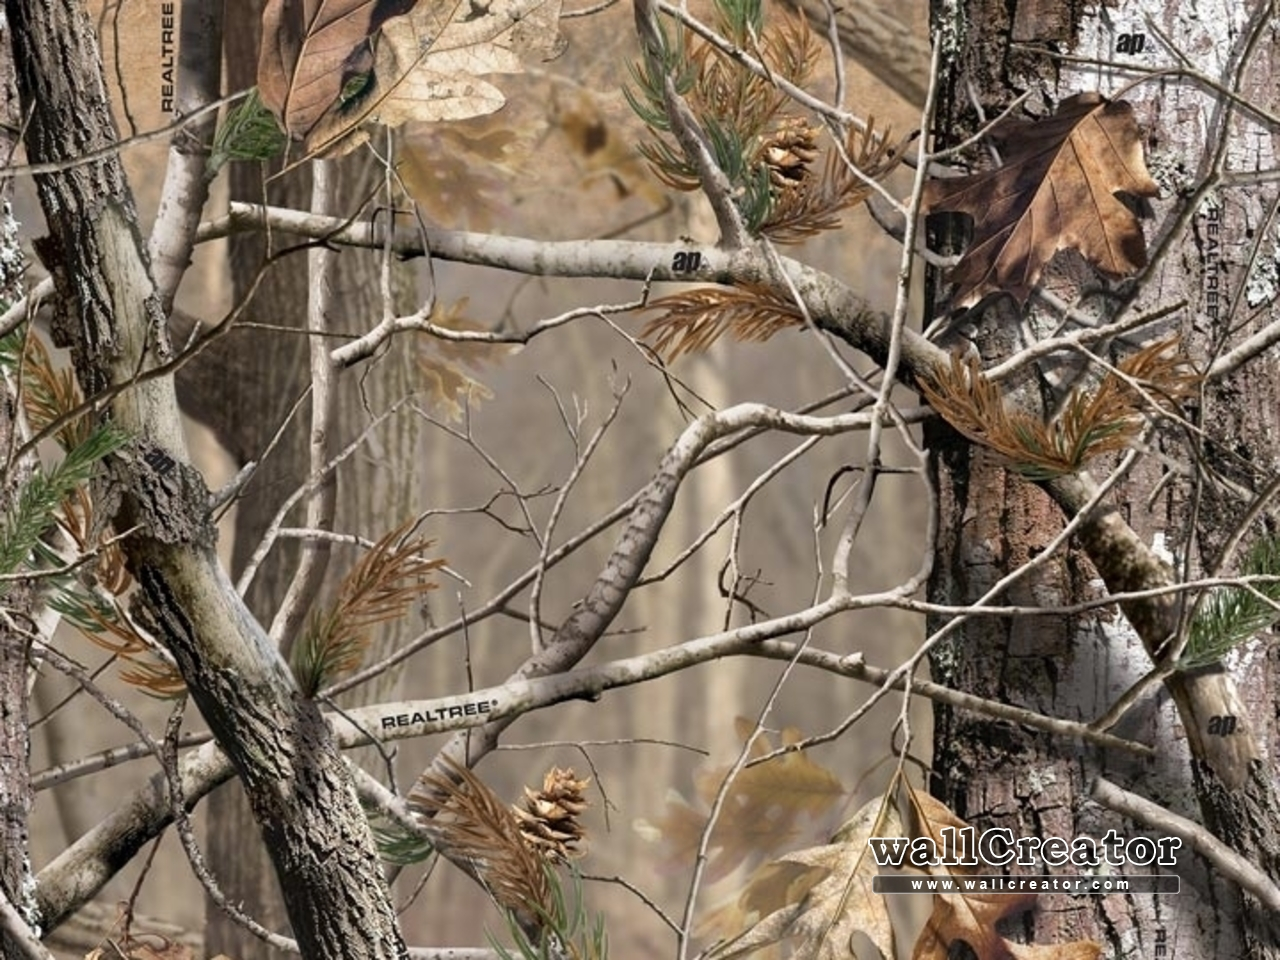 Realtree Camo Wallpaper loopelecom 1280x960